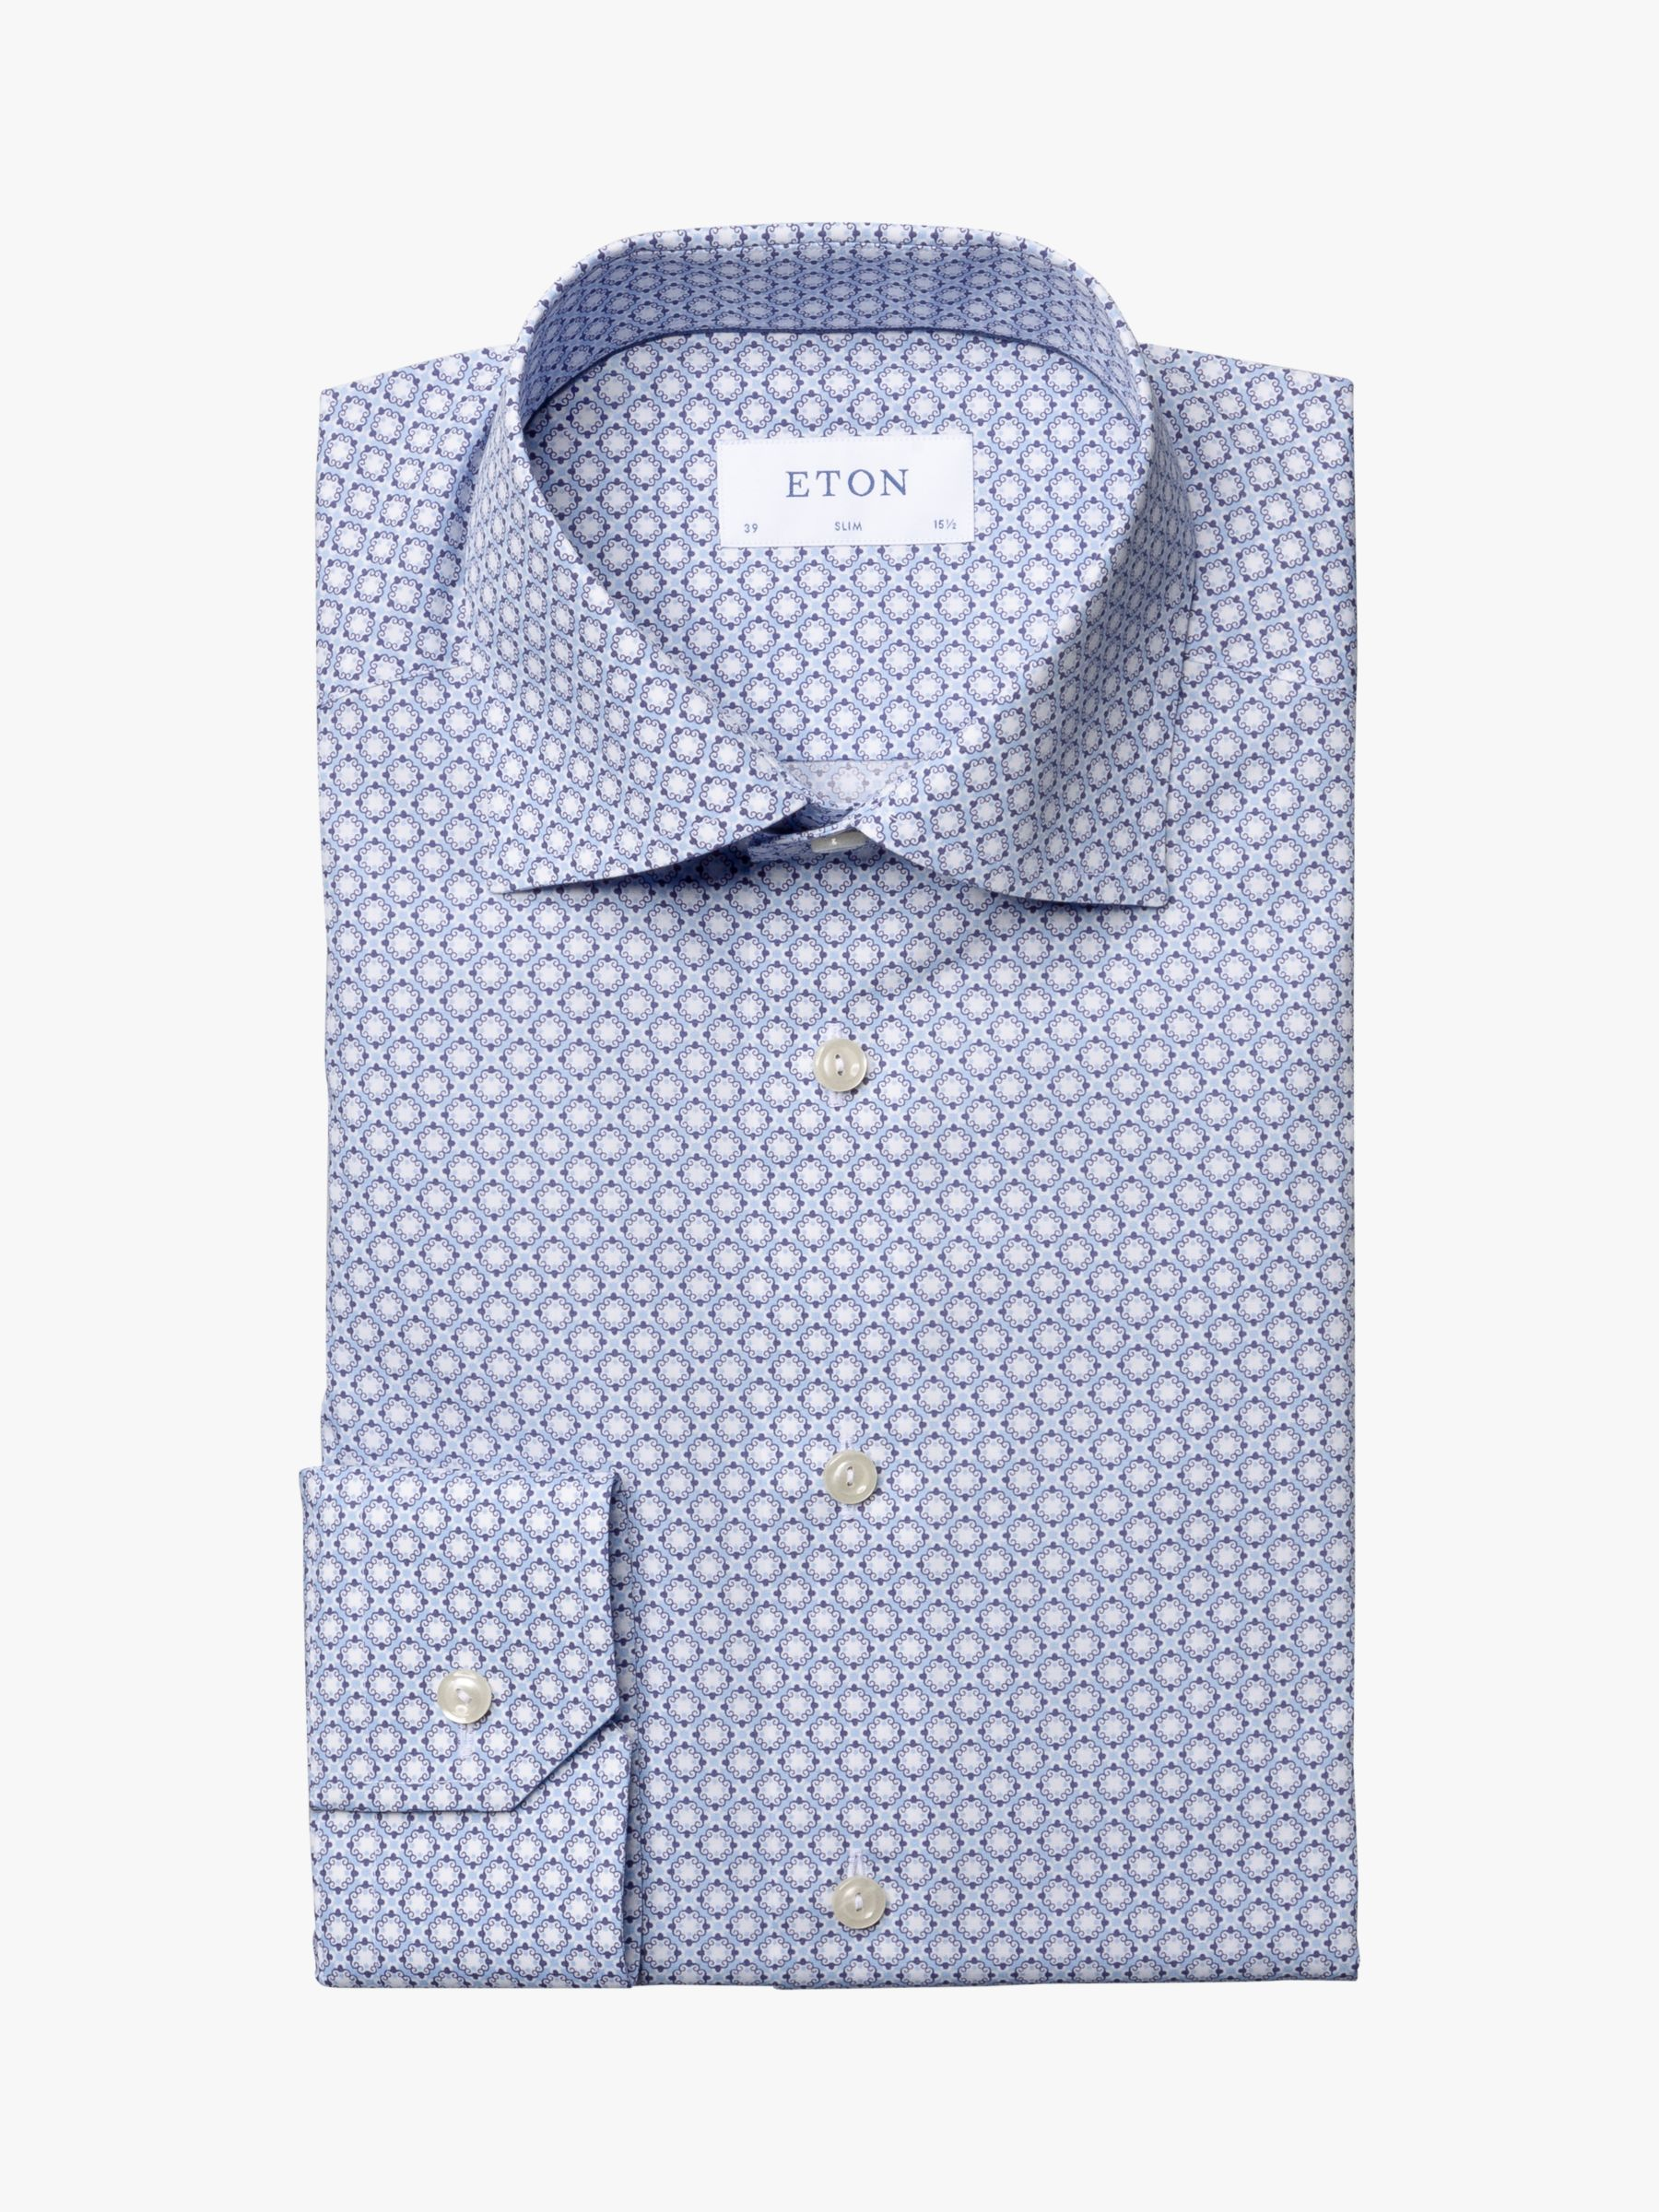 Eton Eton Mosaic Print Slim Fit Shirt, Blue